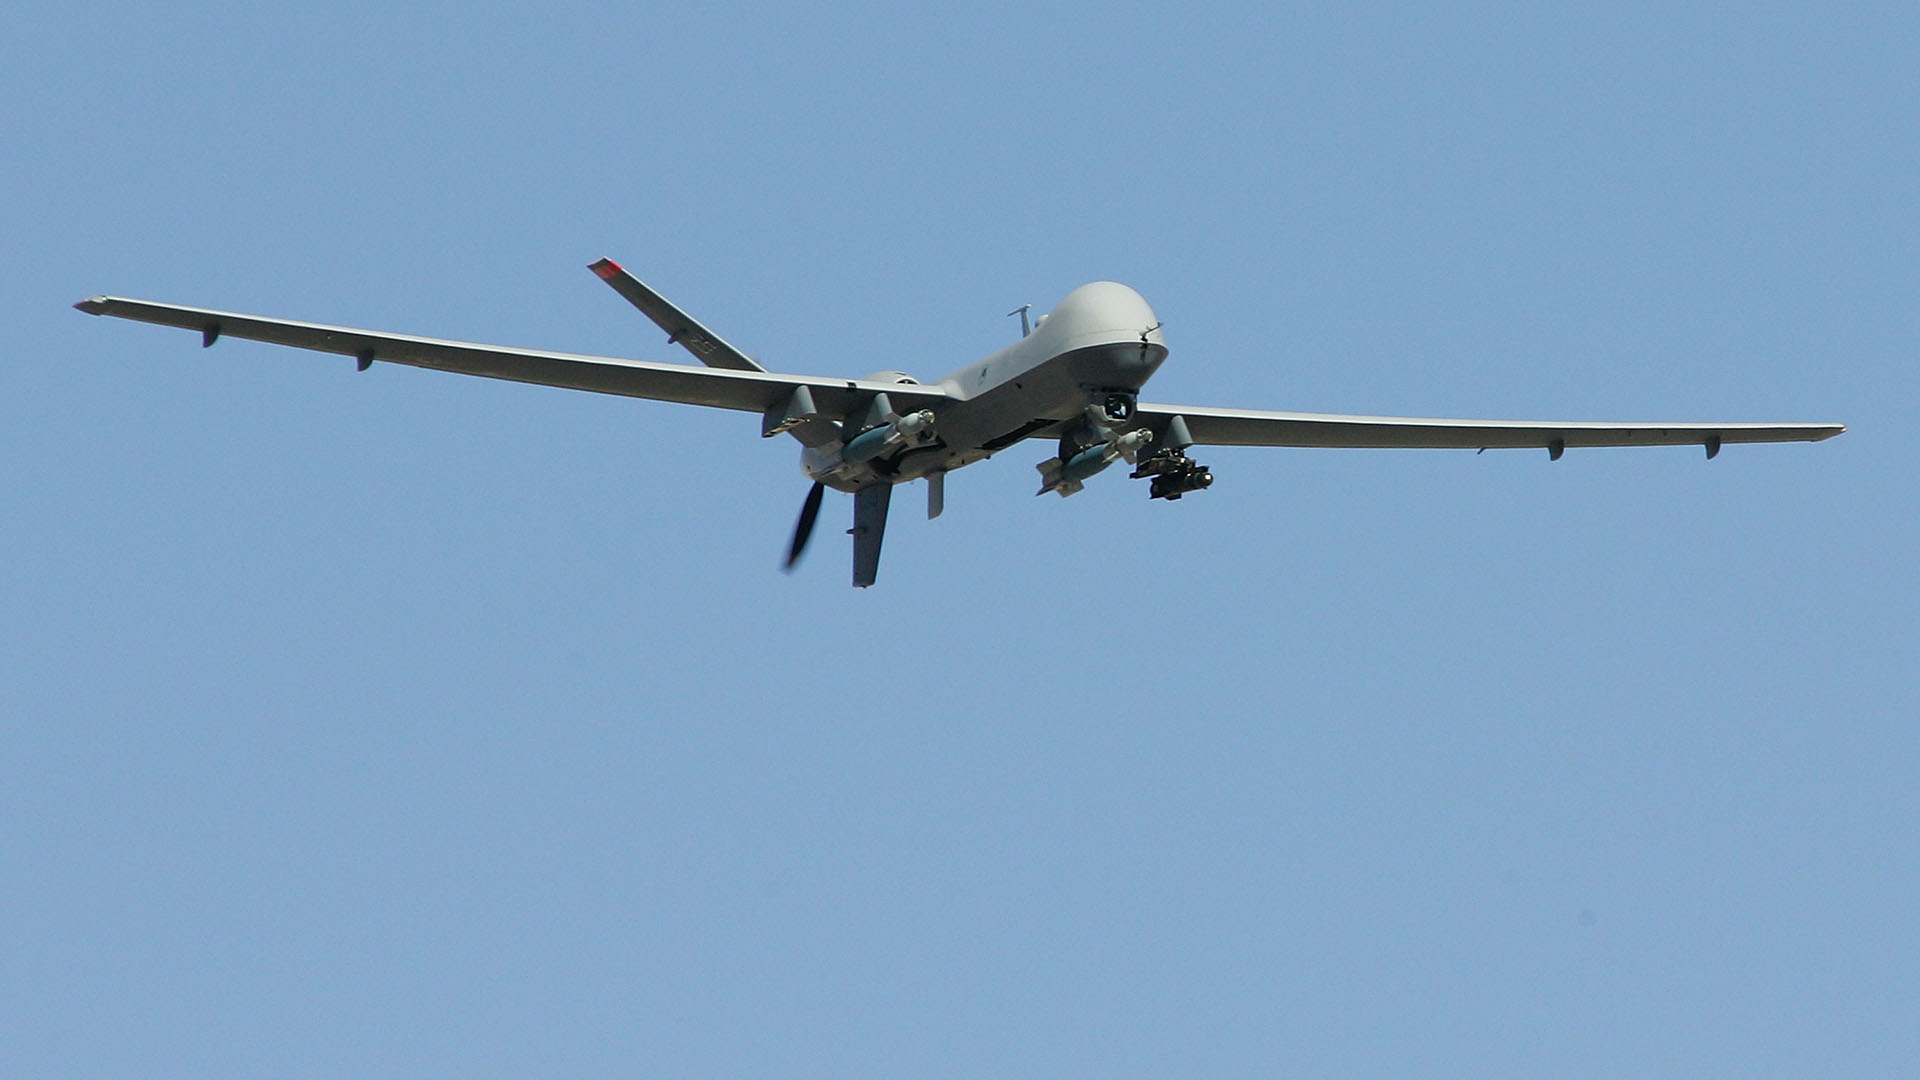 Downed Drones: ATF Spent $600K on 11 Drones That Never Flew, Report Says